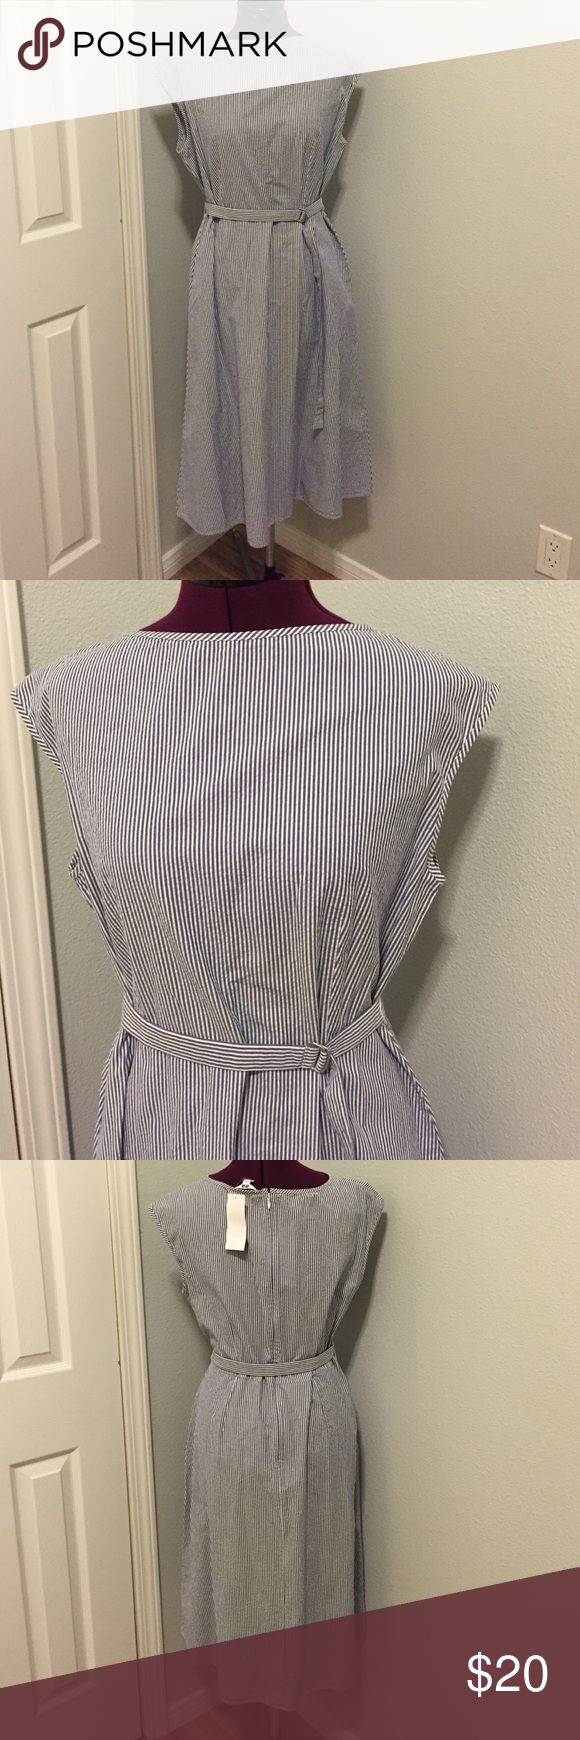 👗🎈 Pinstrip Linen Uniqlo Boatneck Dress NWT This is a brand new Uniqlo dress with tags still on.   Flattering neckline and super comfy fabric!  It has POCKETS!!!  Comes from a smoke free pet free home! Uniqlo Dresses